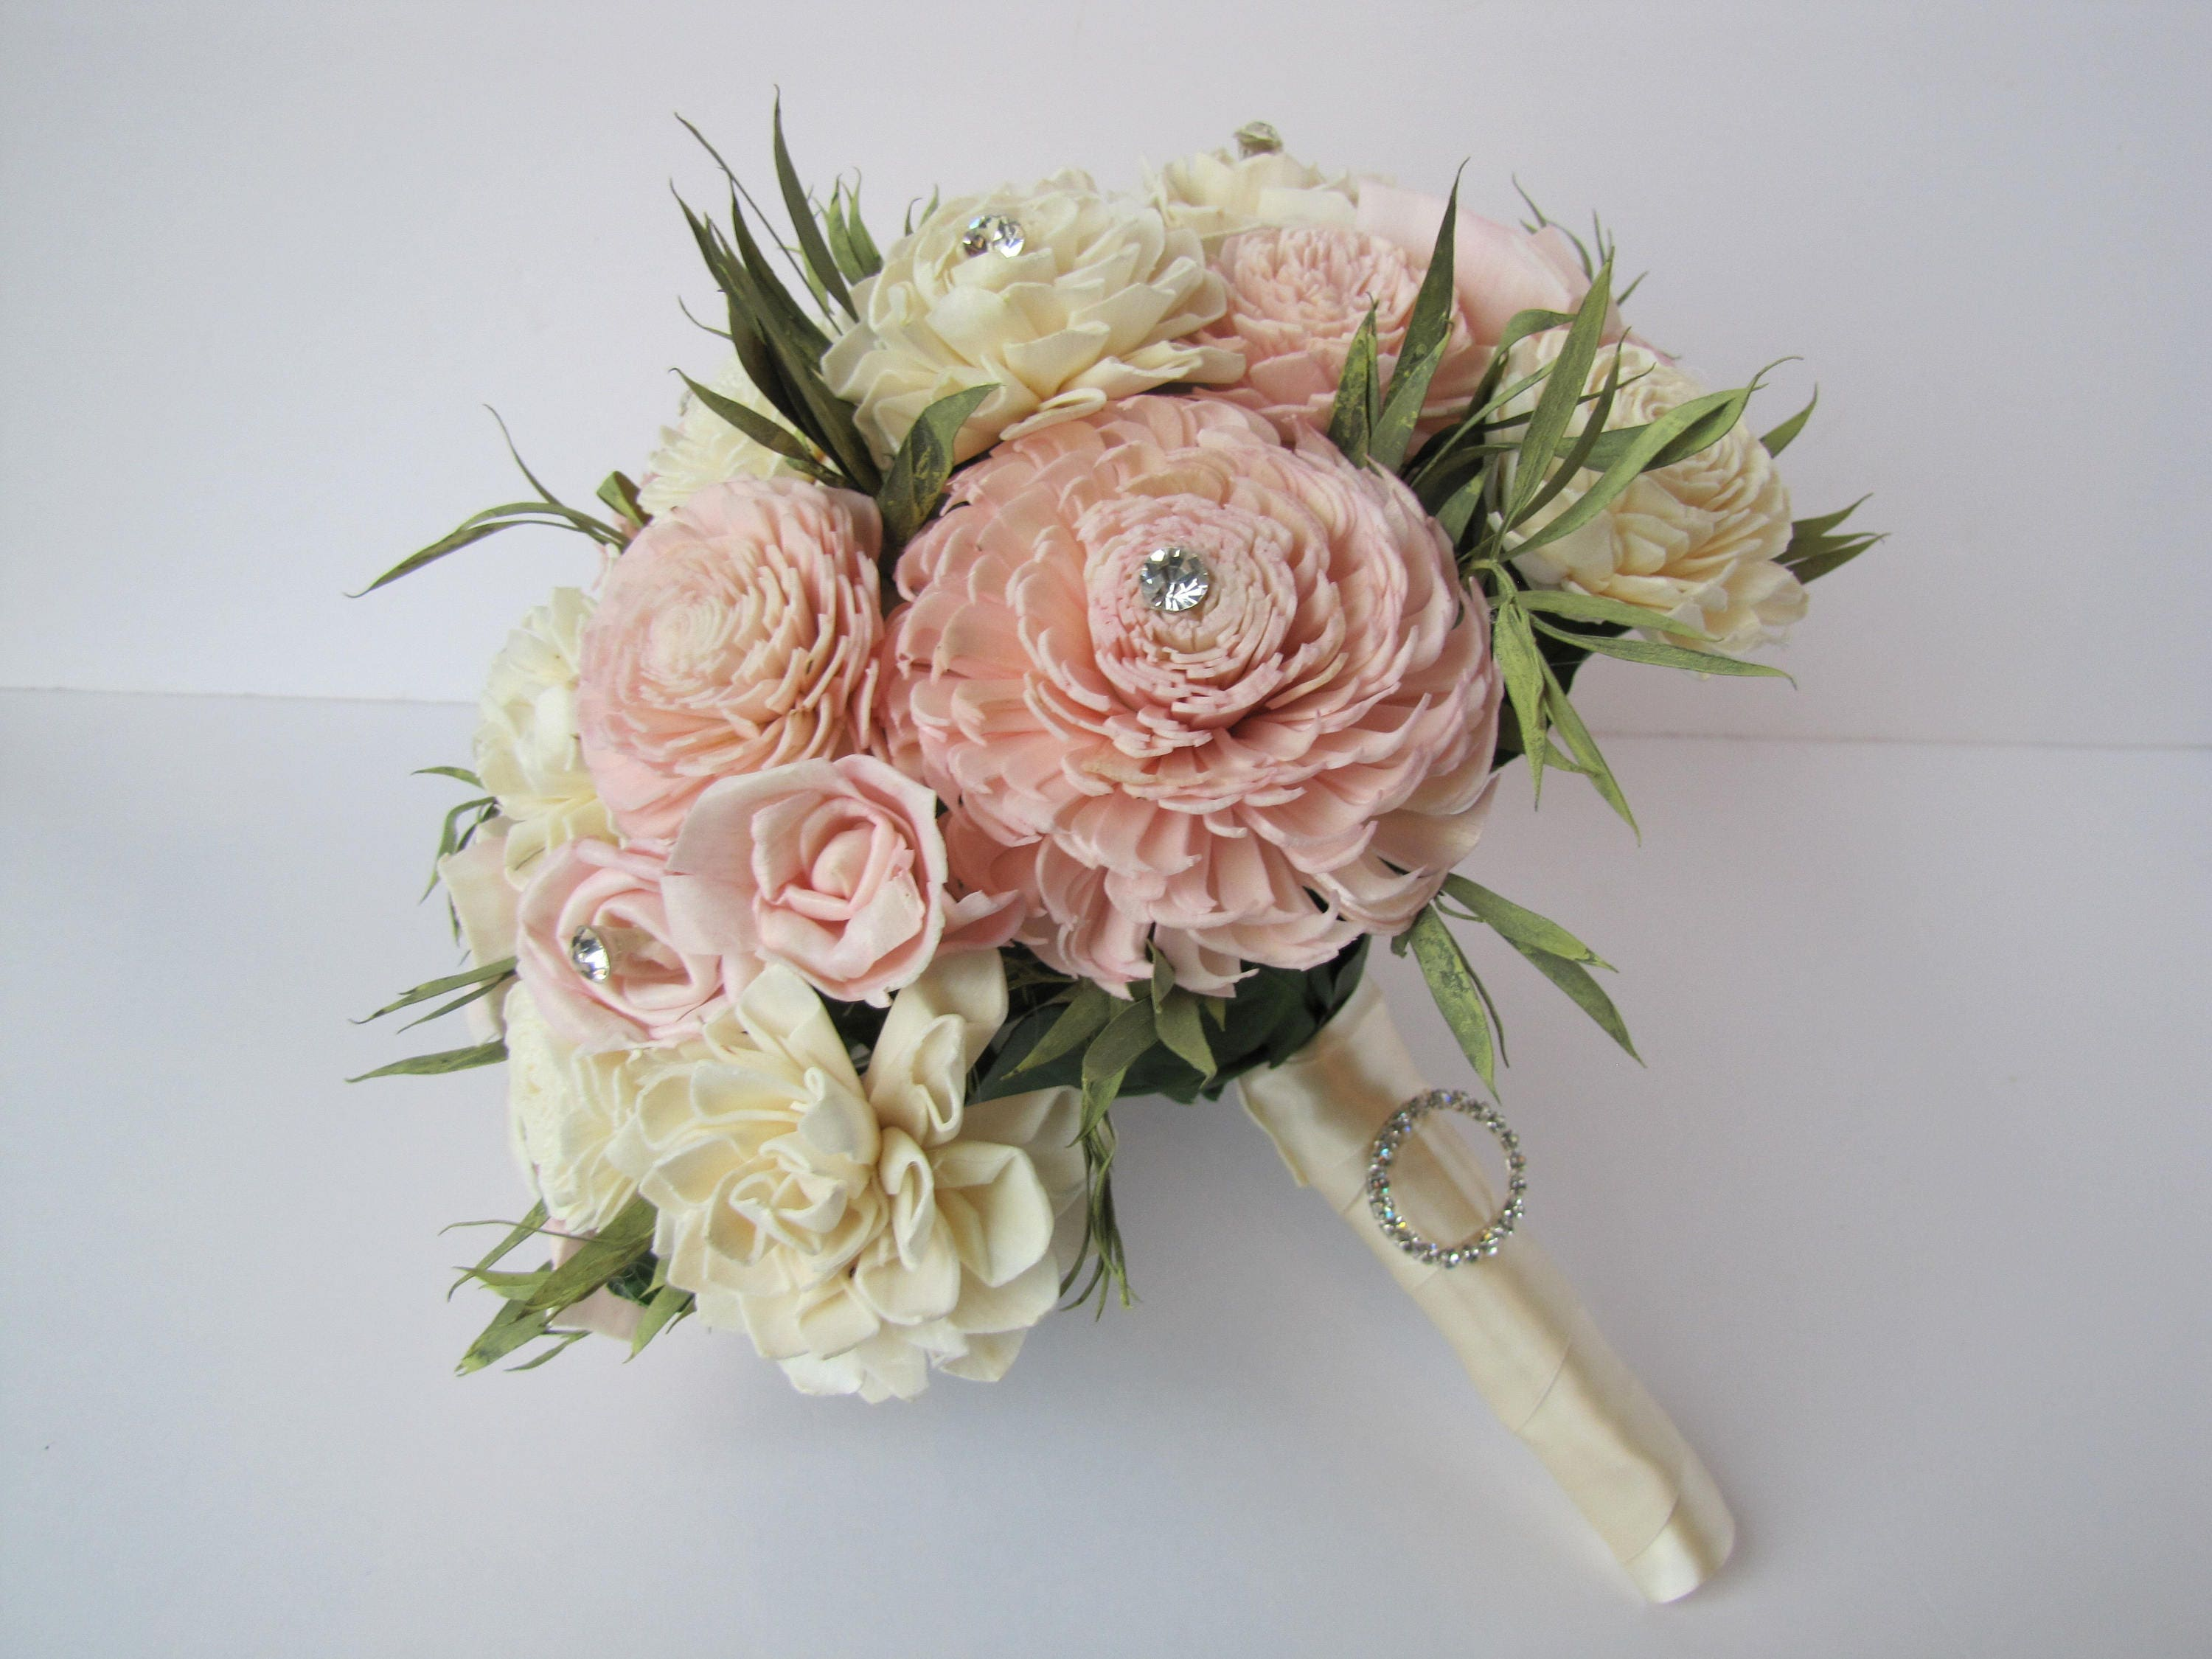 Blush pink bridal bouquet keepsake bridal bouquet sola flower blush pink bridal bouquet keepsake bridal bouquet sola flower bridal bouquet sola flower bouquet pink wedding flowers izmirmasajfo